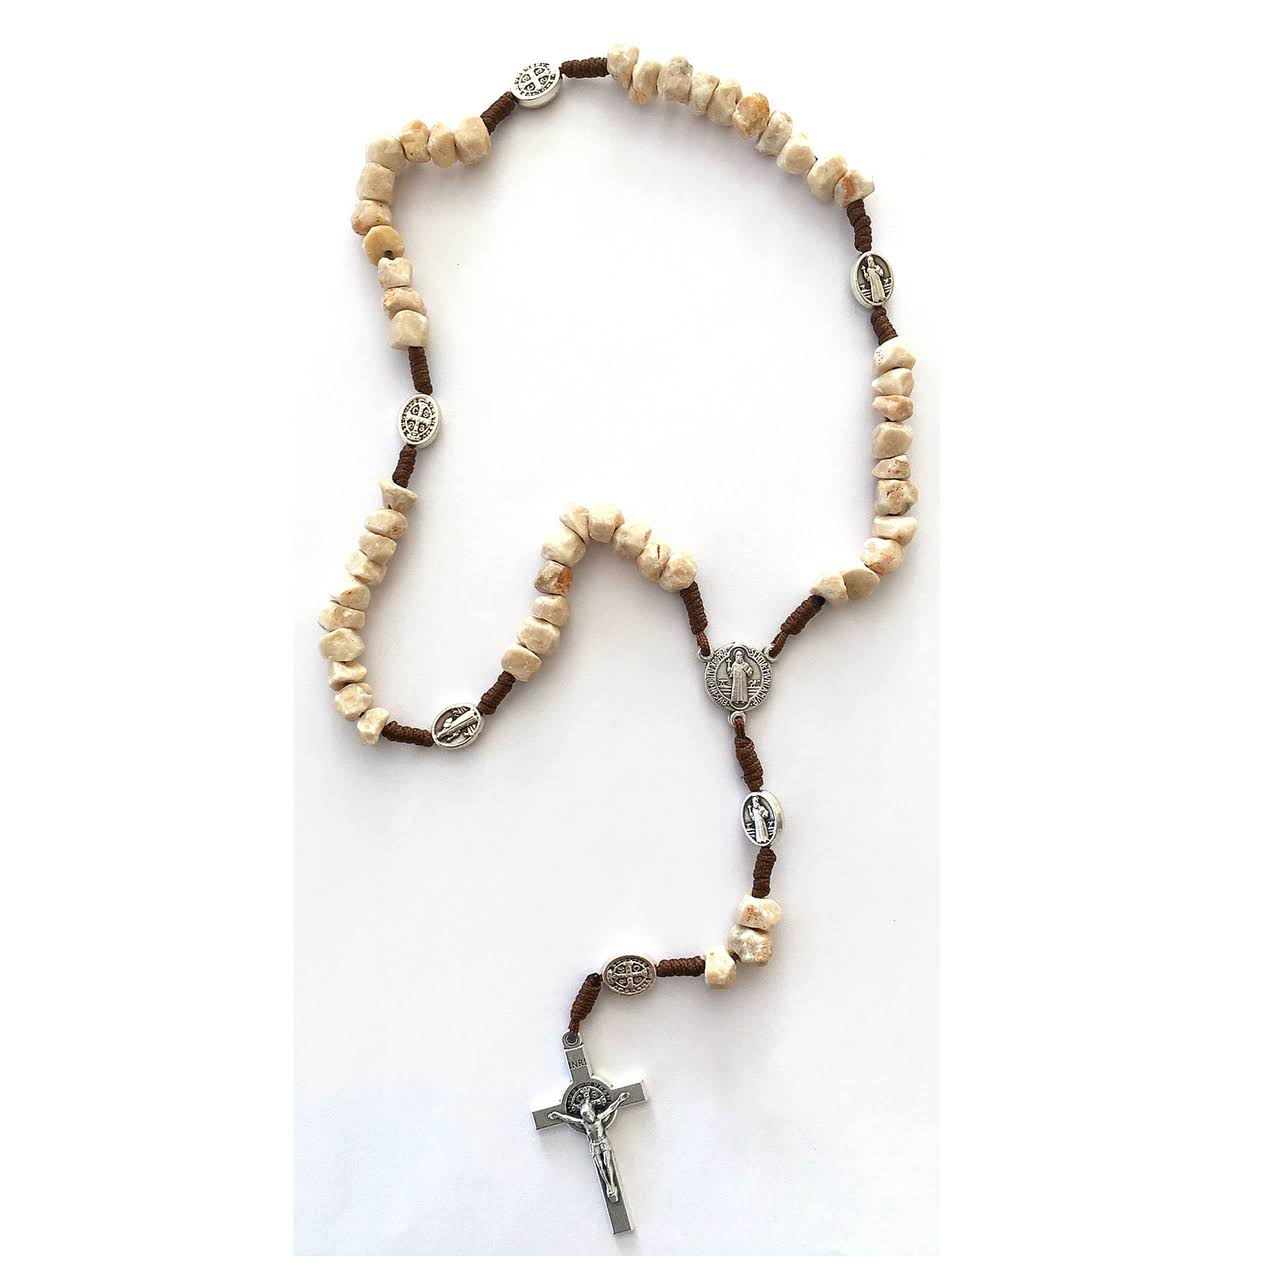 Stone Beads Brown Cord/St Benedict Our Father Beads, Rosary